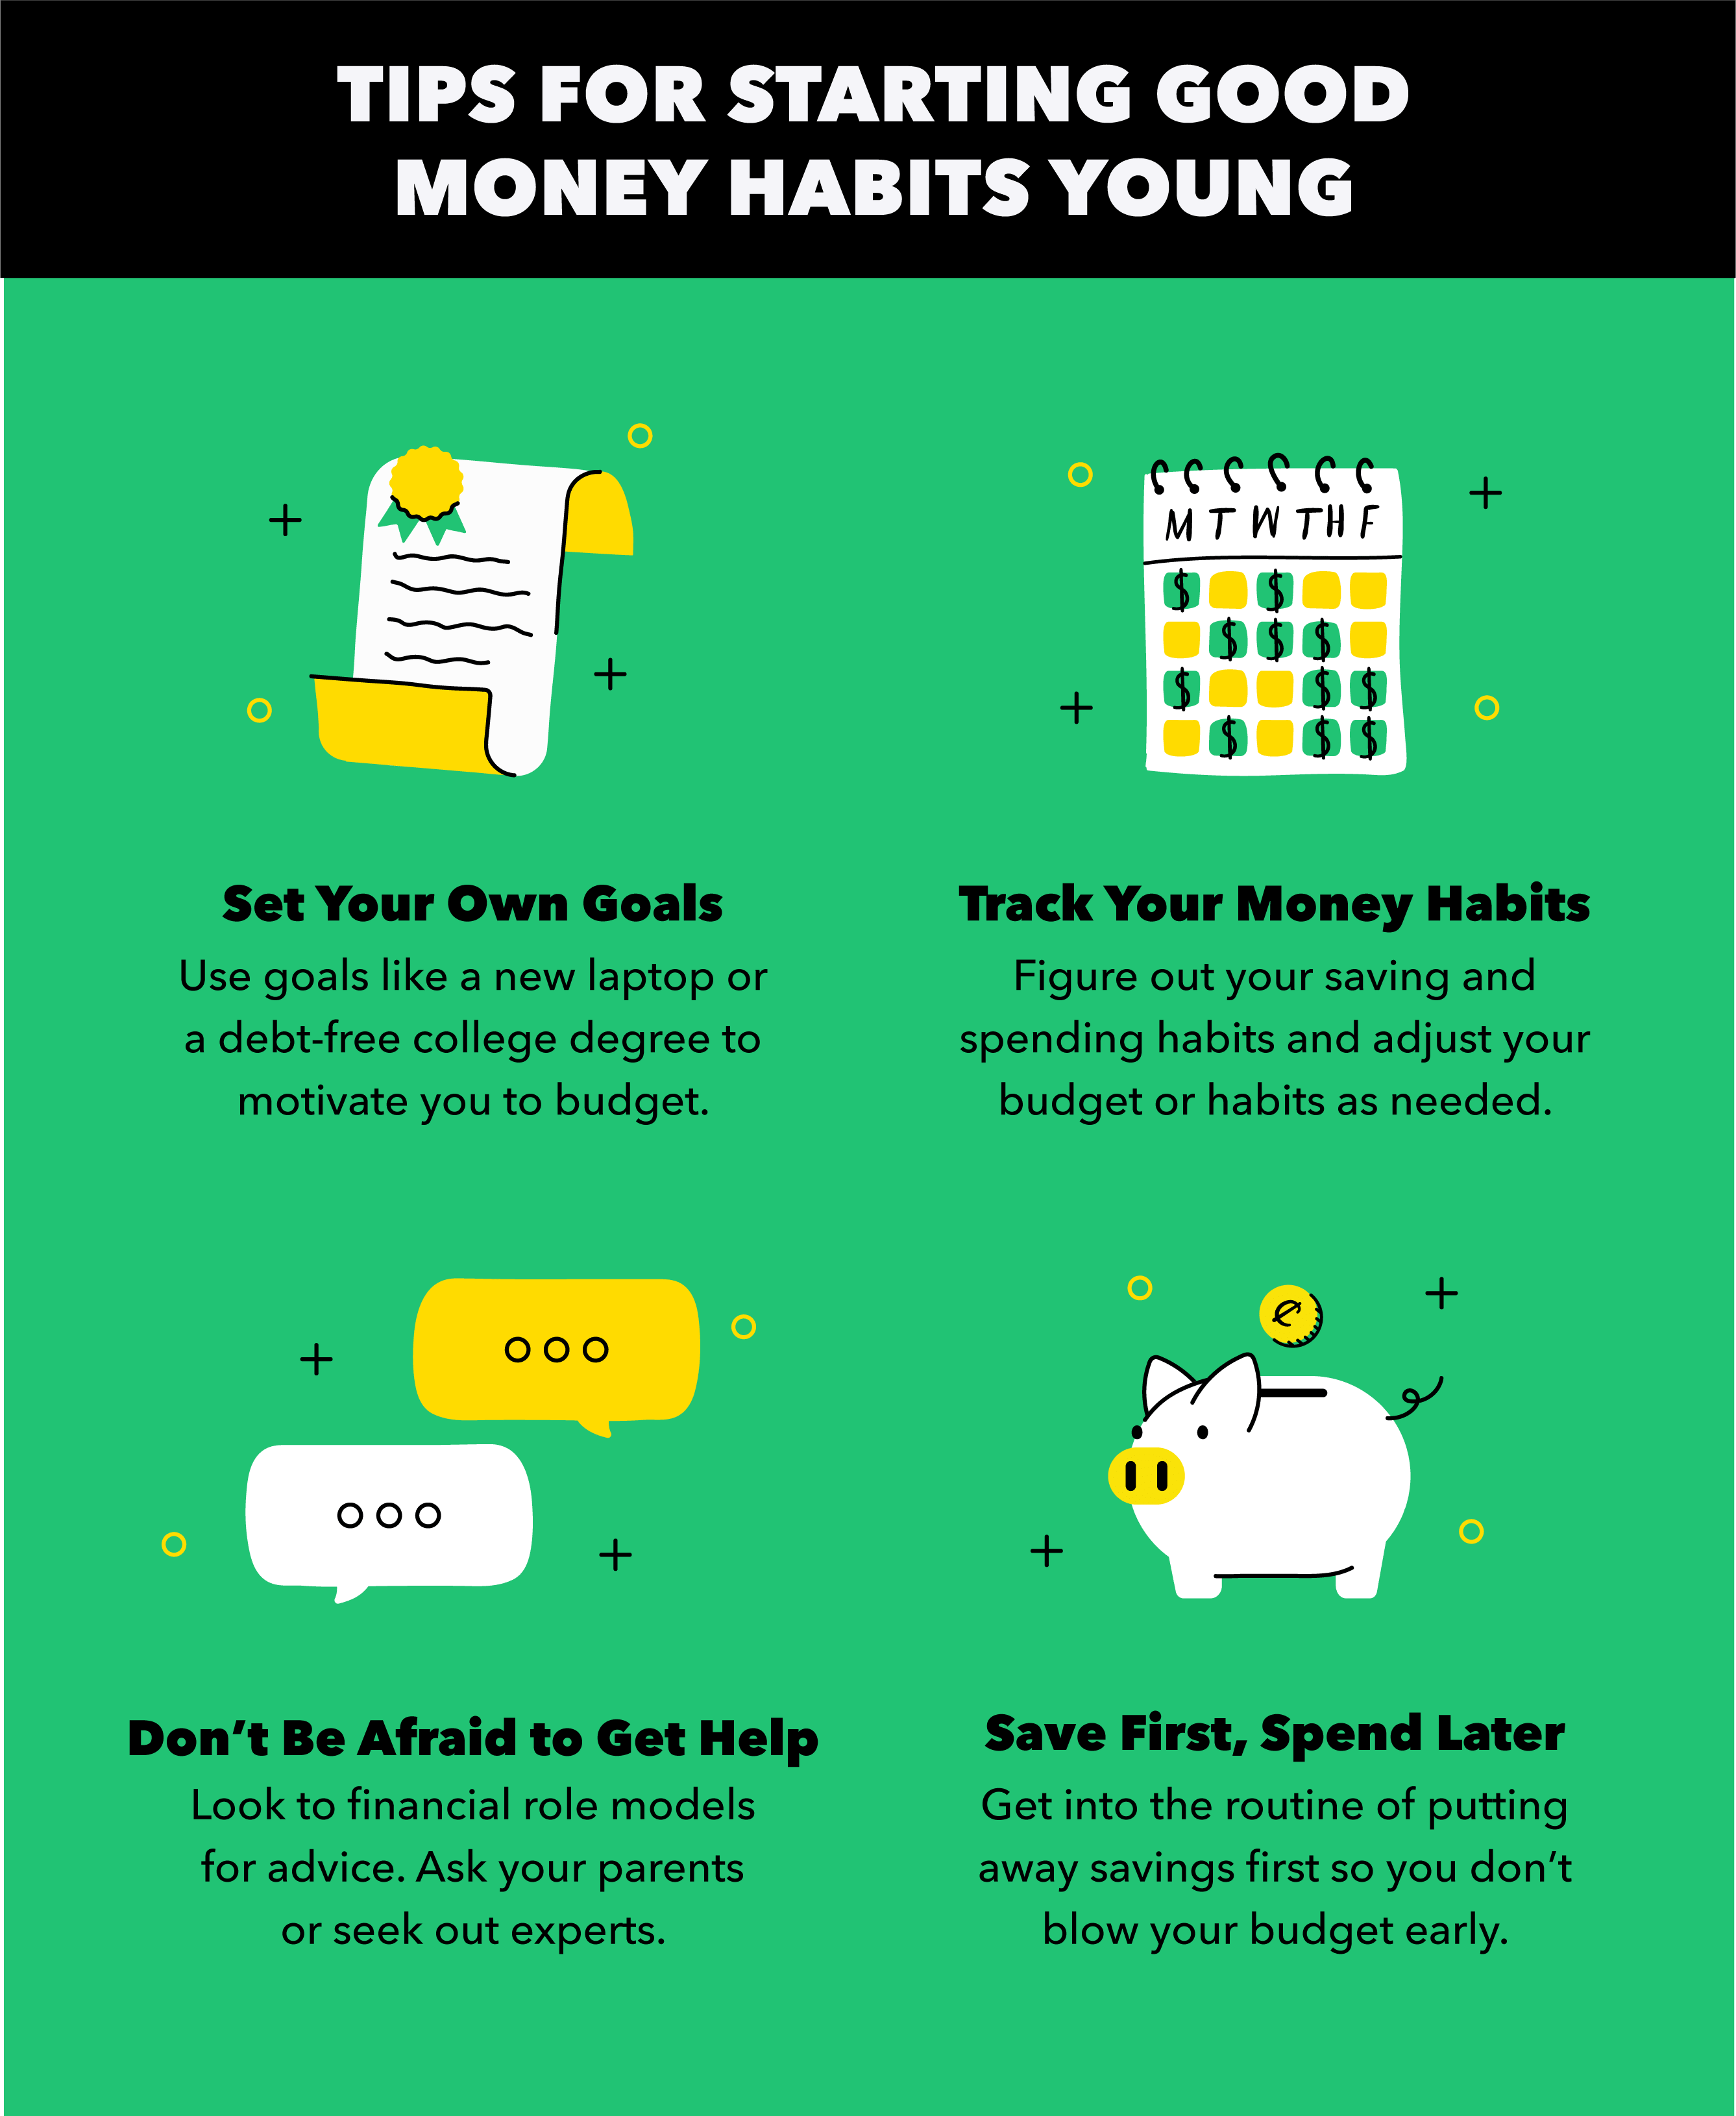 tips-for-starting-good-money-habits